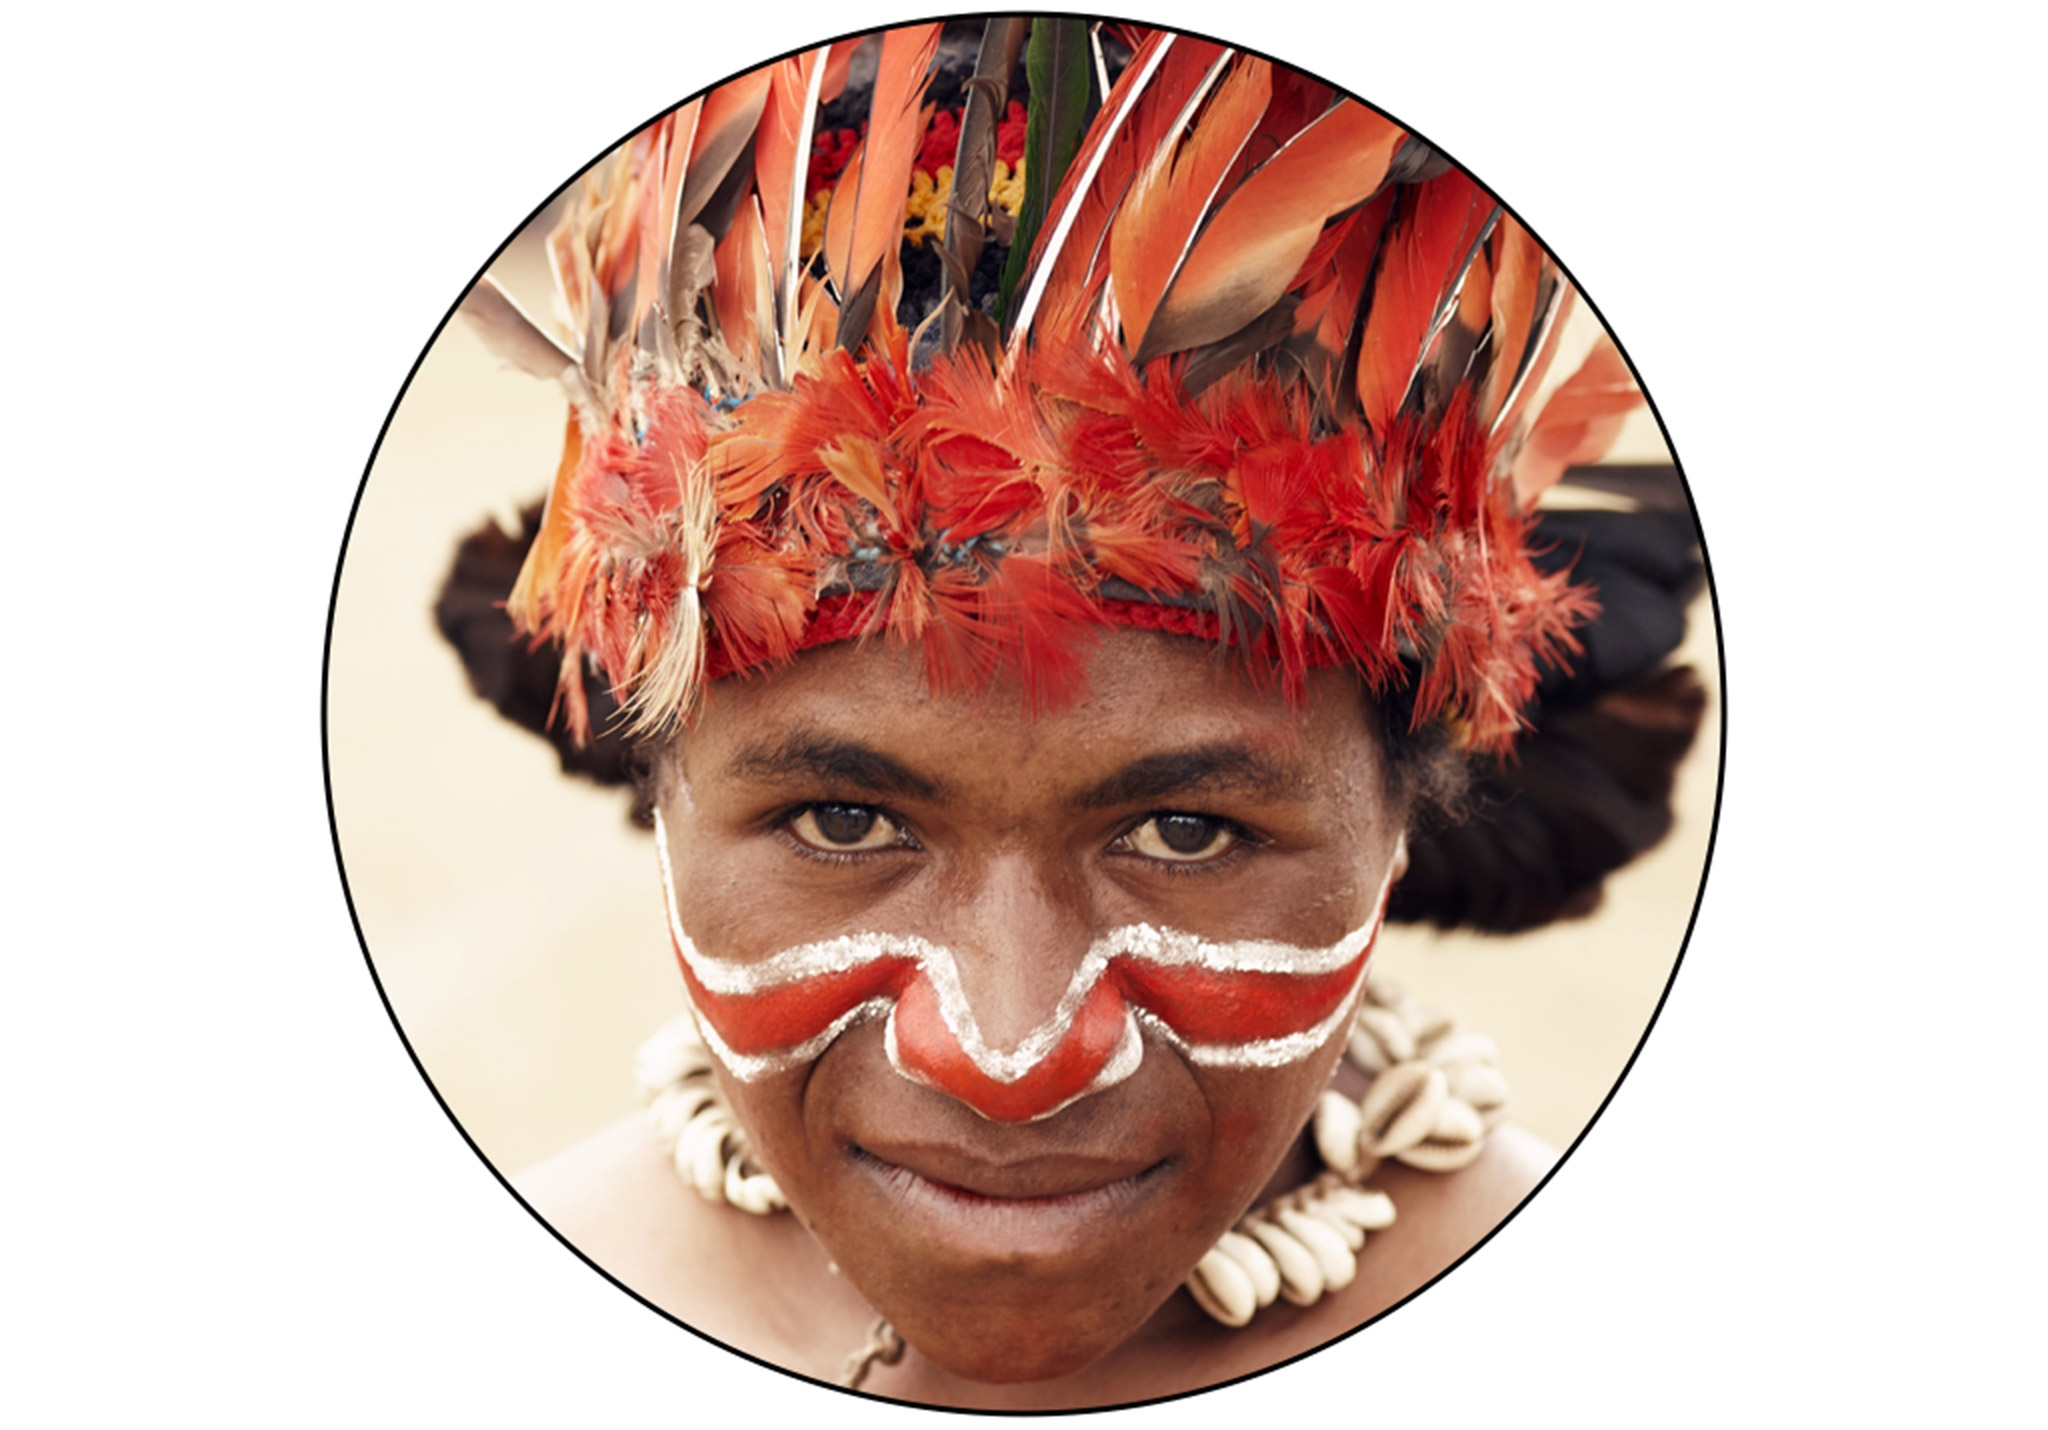 KARIMUI WOMAN, PAPUA NEW GUINEA